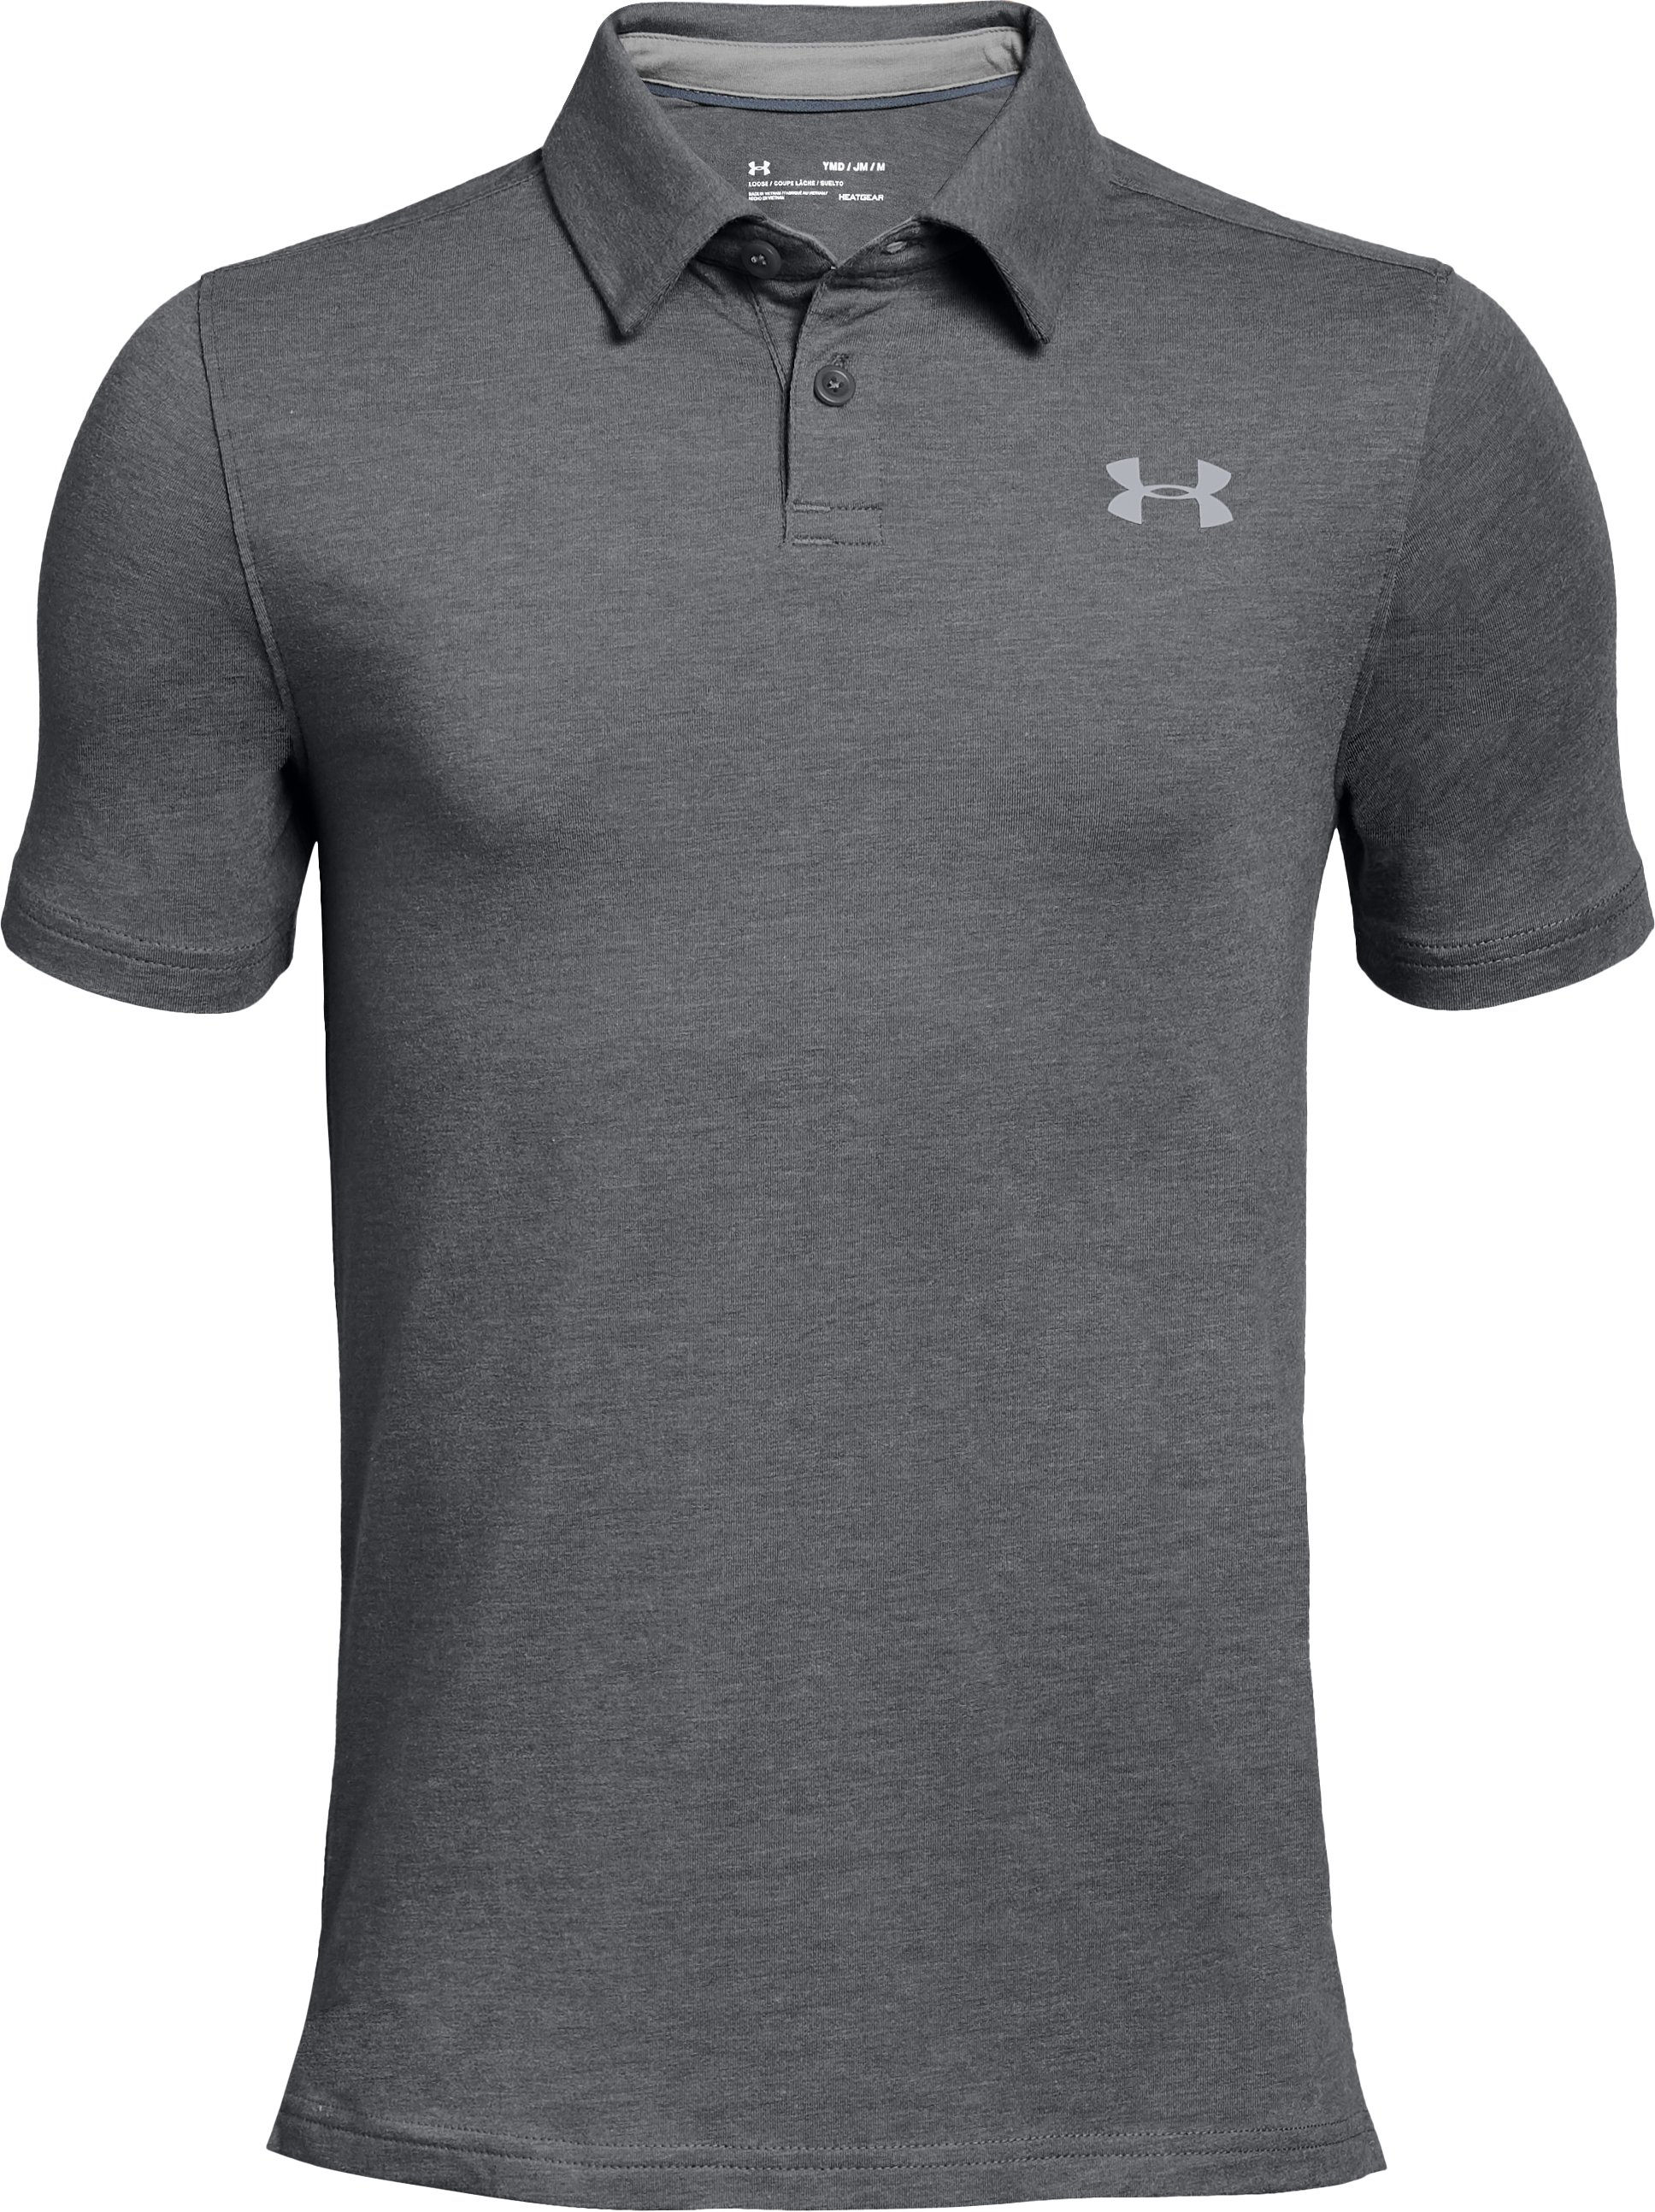 Boys' Charged Cotton® Heather Polo, Graphite,